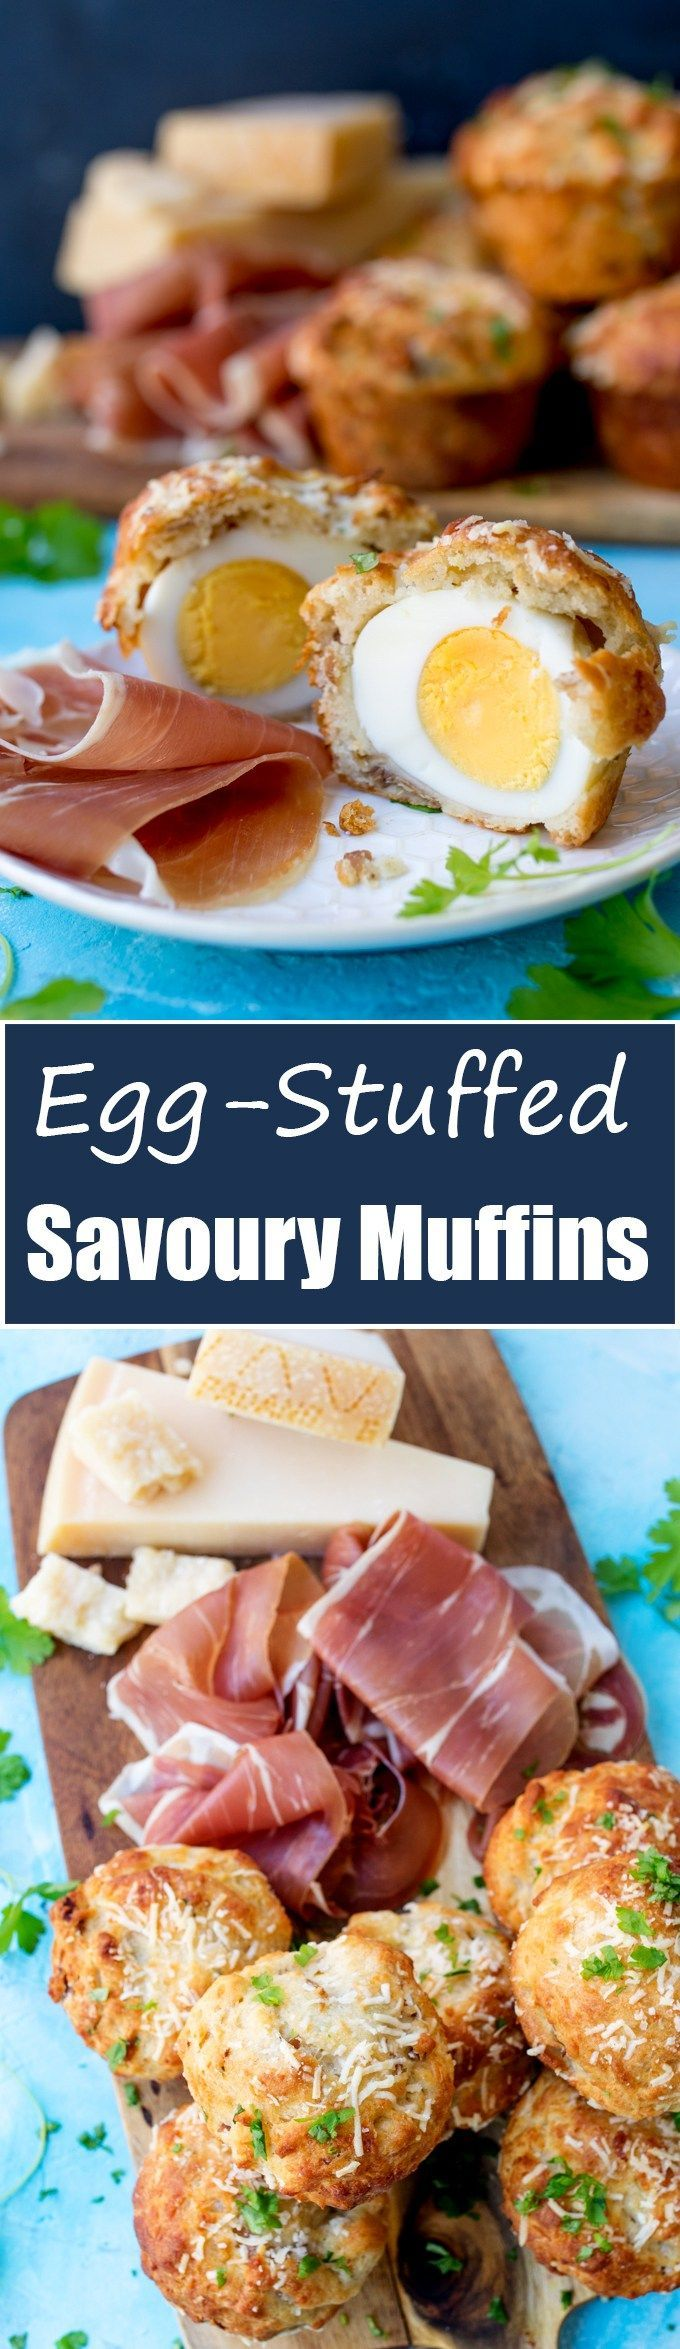 These egg stuffed muffins are cheesy and delicious - perfect for a picnic!